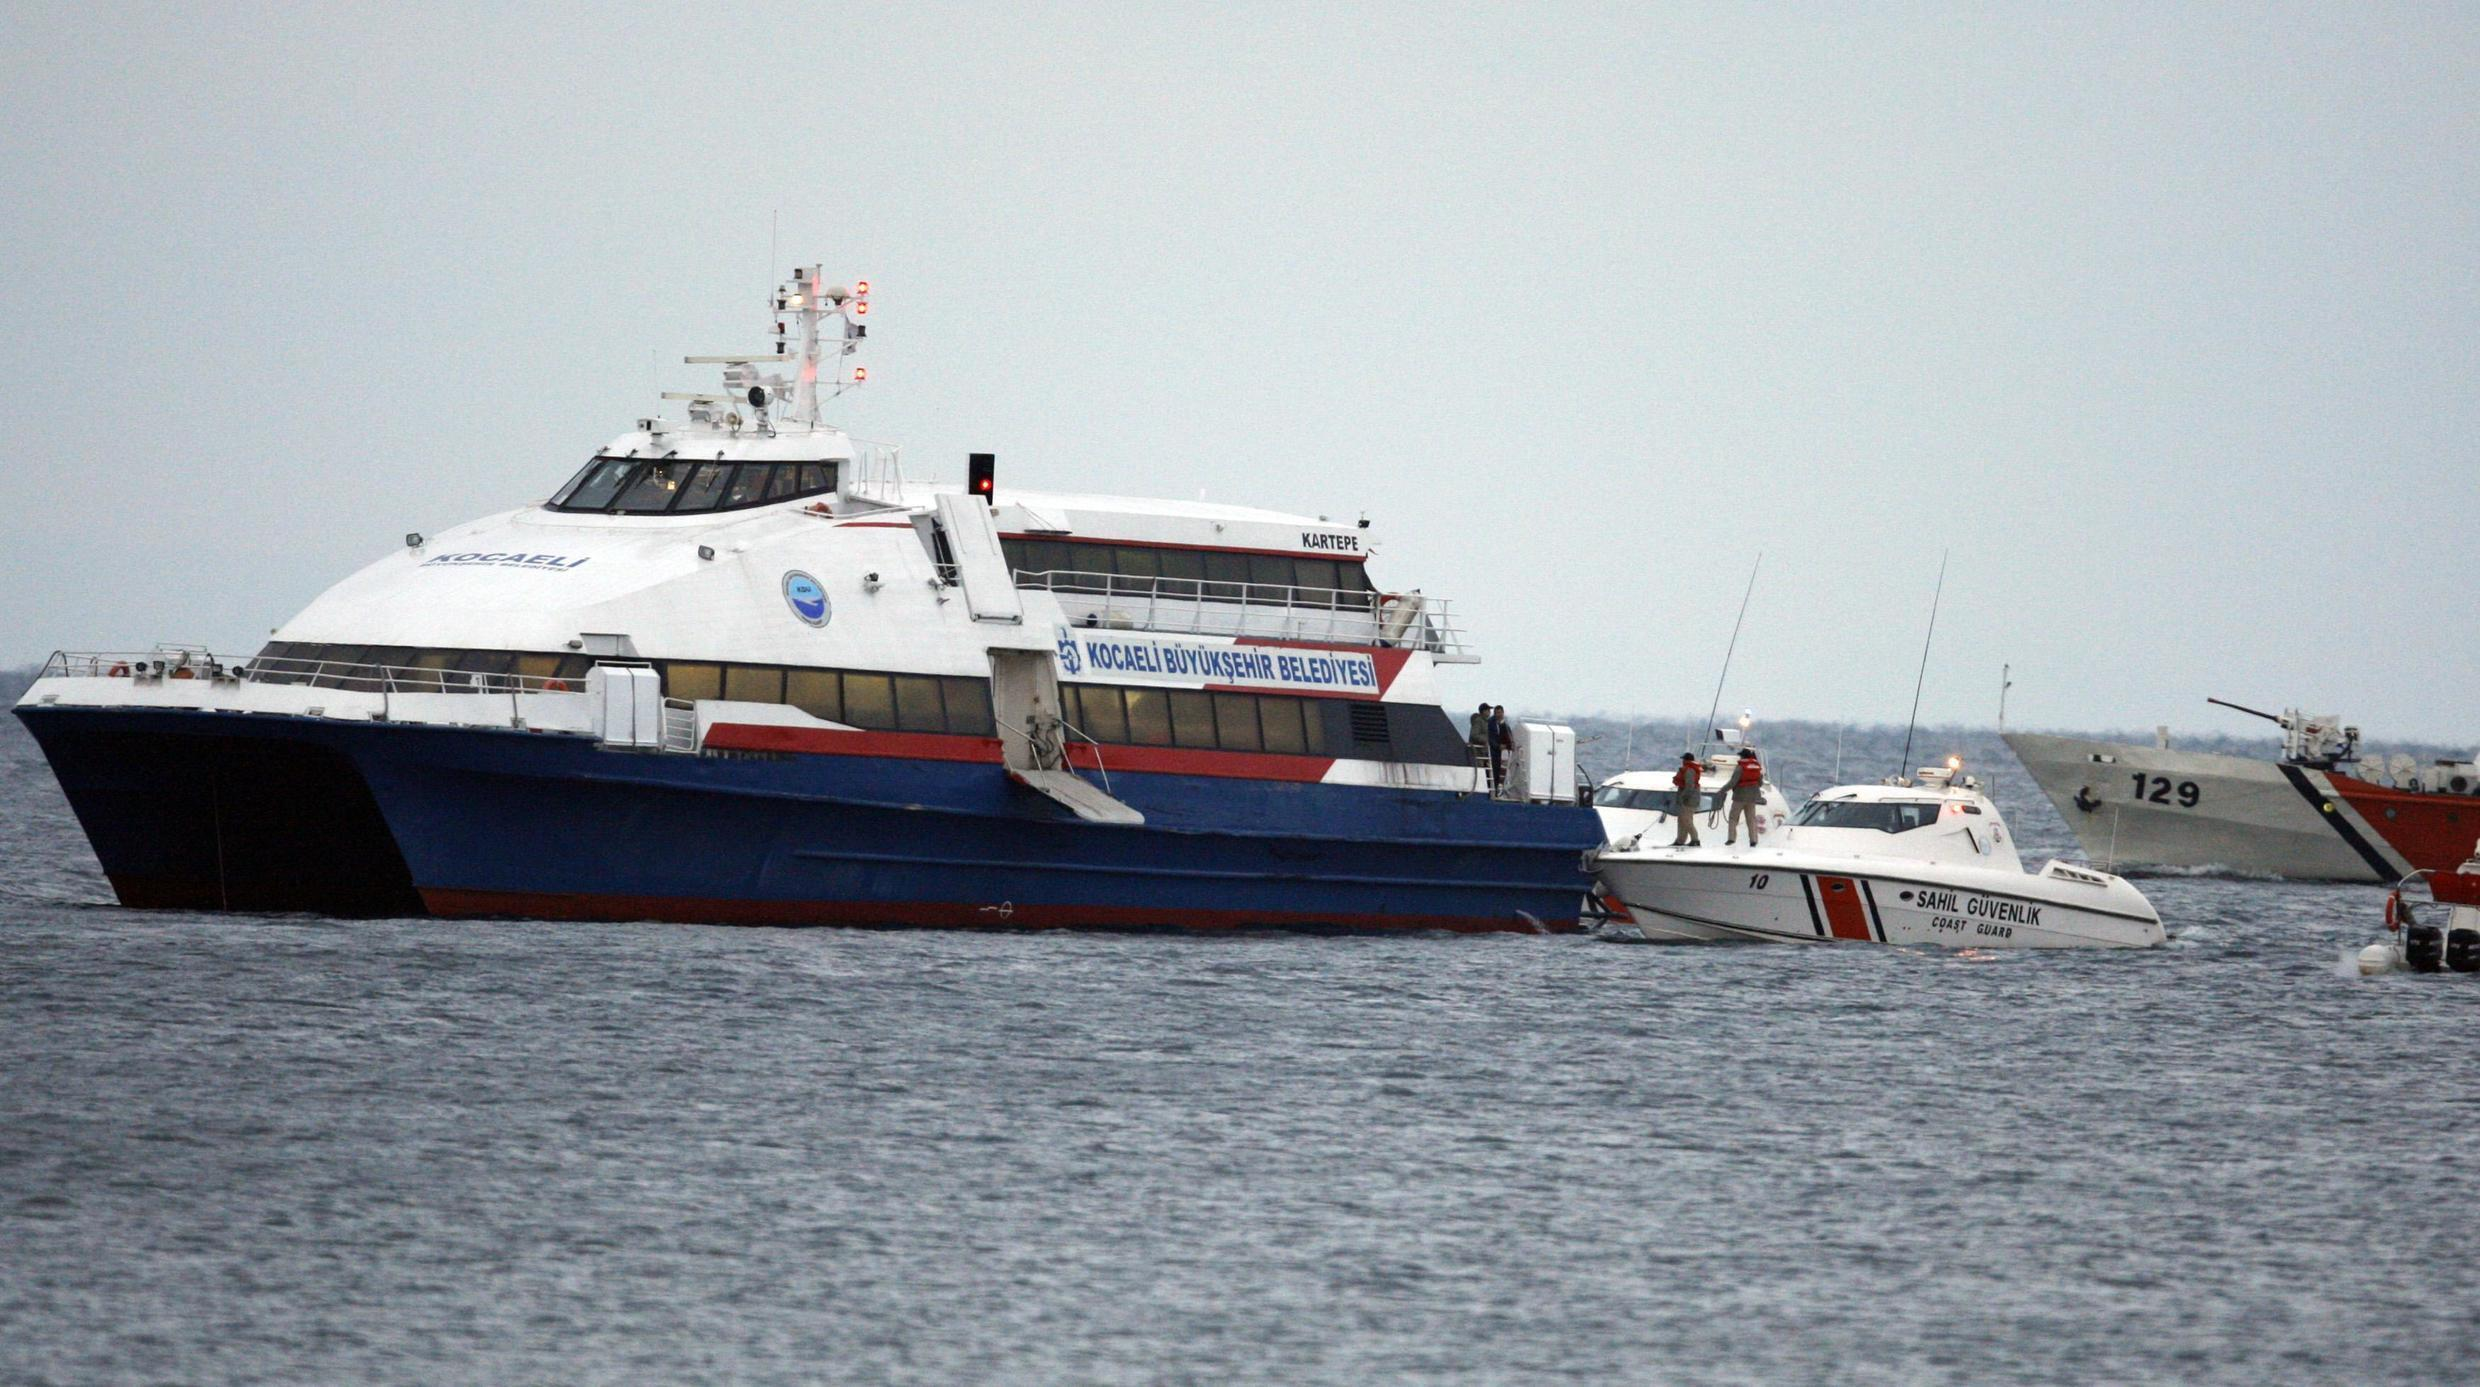 Coastguards prepare to board the Kartepe ferry to disembark the hostages